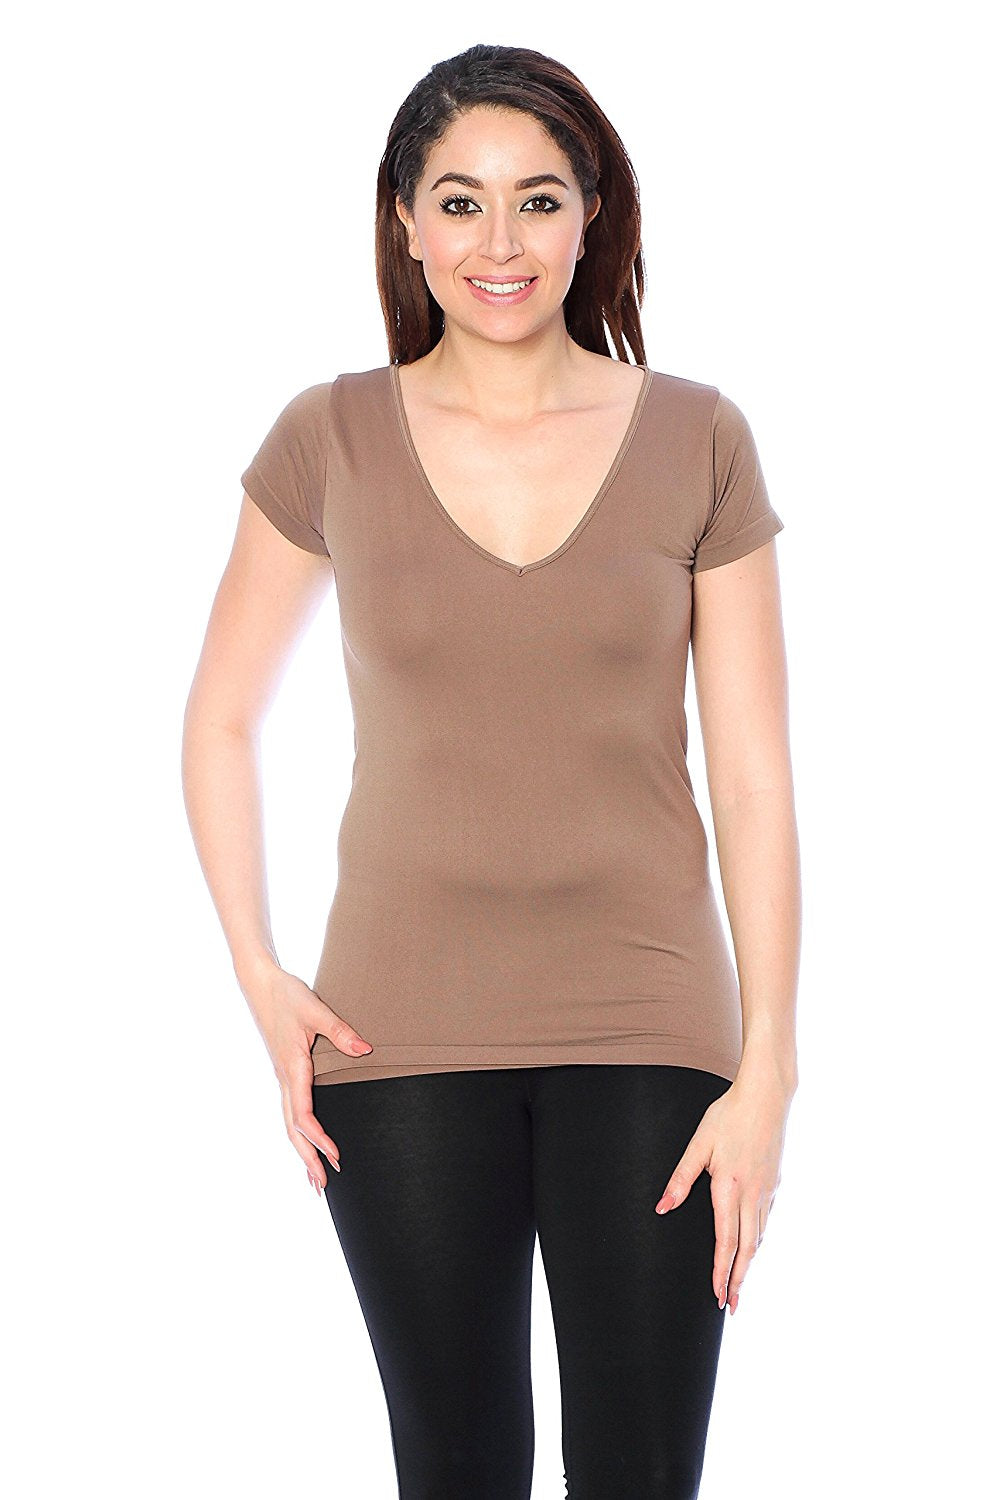 Short Sleeve V Nack Plain One Size Top